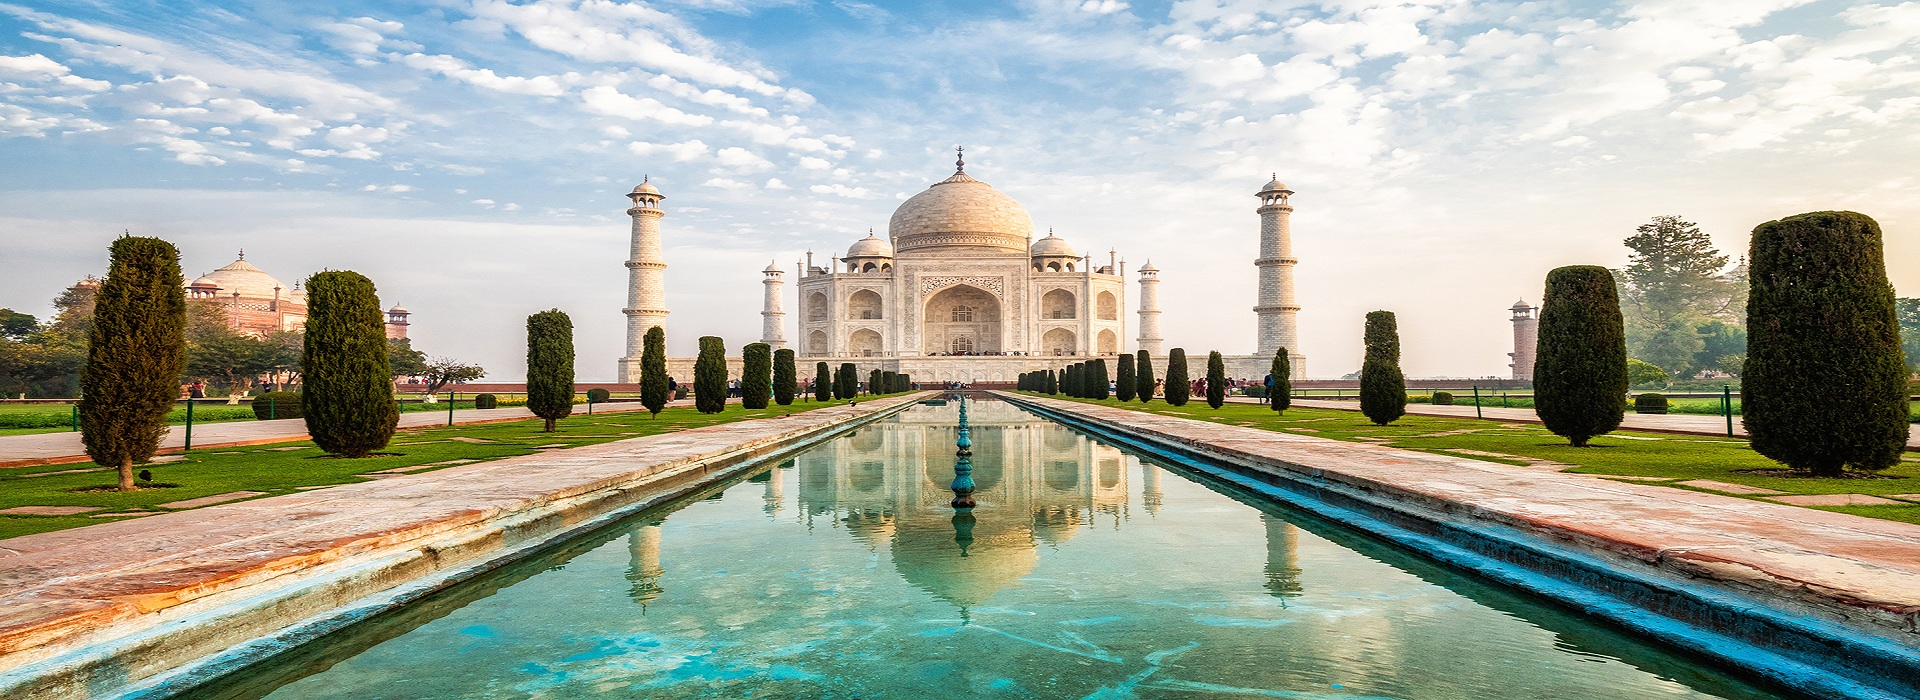 India Tourism After Covid-19